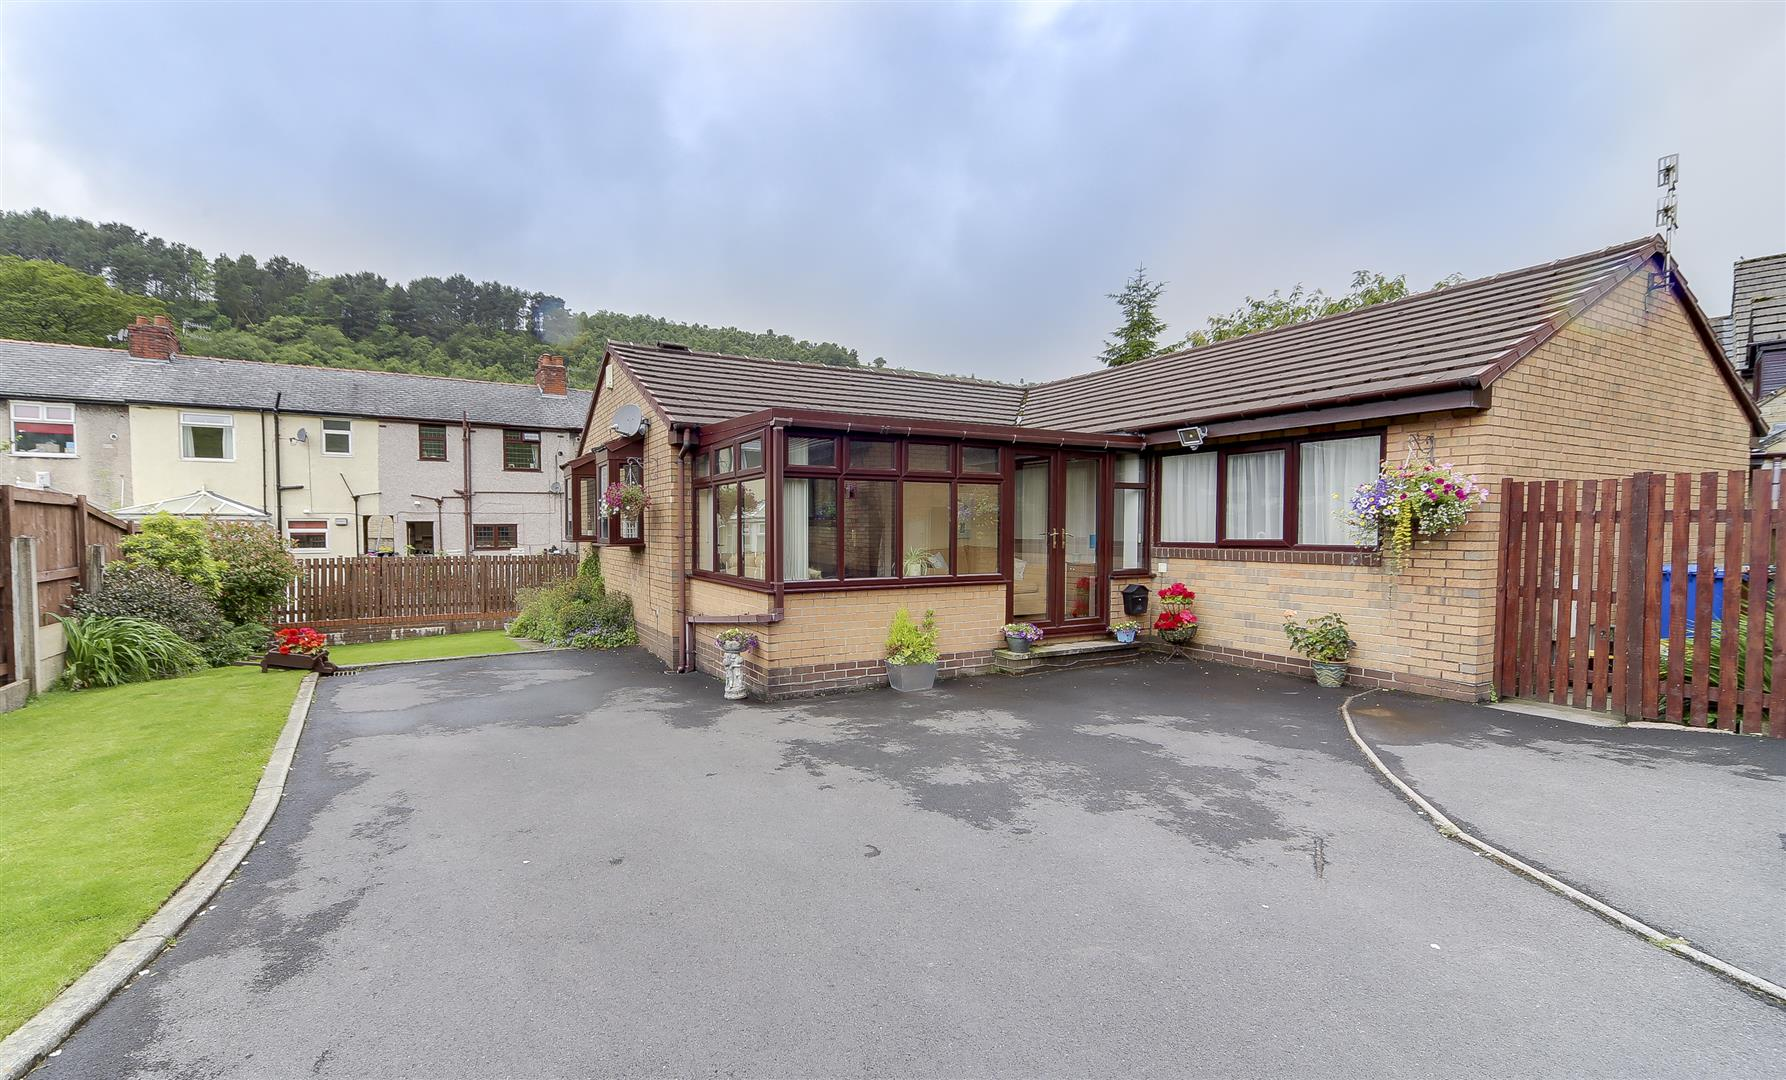 3 Bedrooms Detached Bungalow for sale in Brock Bank, Whitewell Bottom, Rossendale